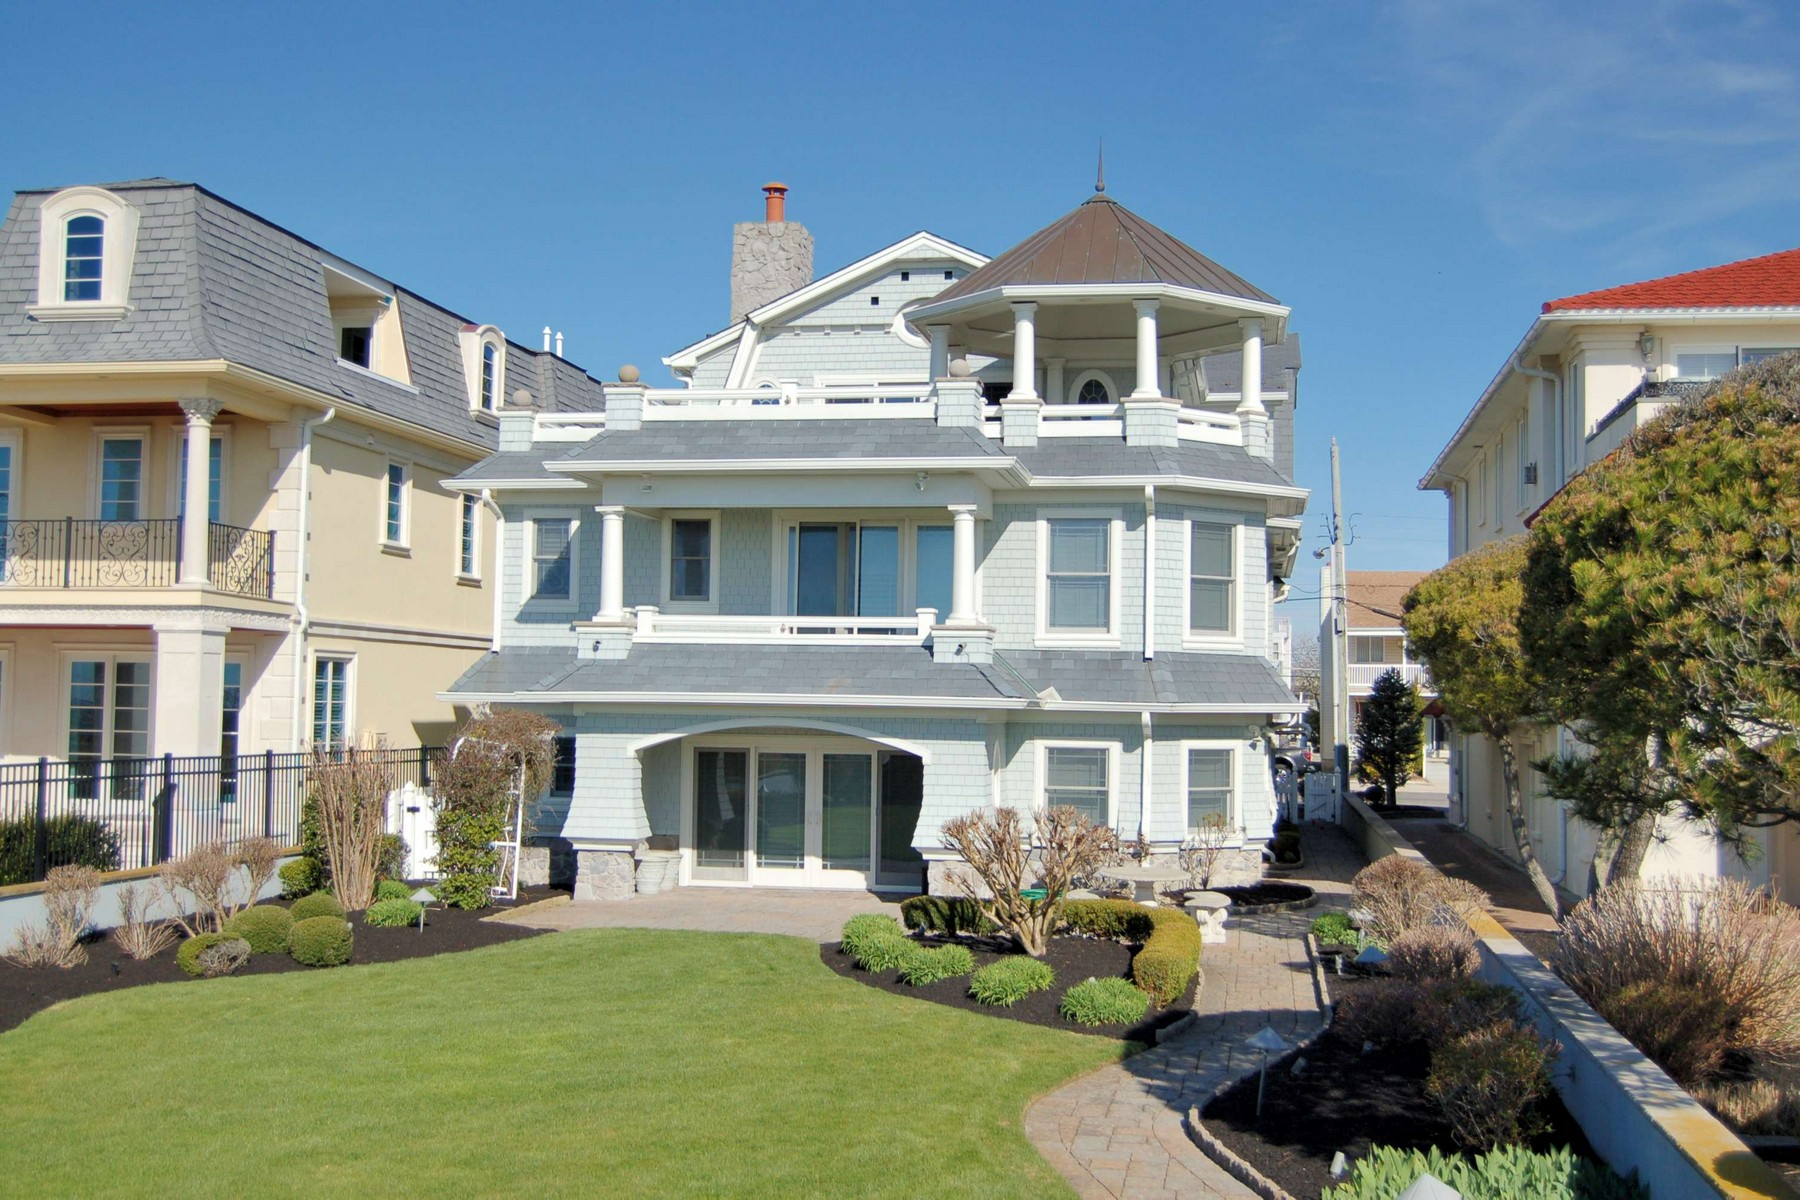 Single Family Home for Rent at Luxurious Ocean Front Rental 2021 Wesley Avenue Ocean City, New Jersey 08226 United States